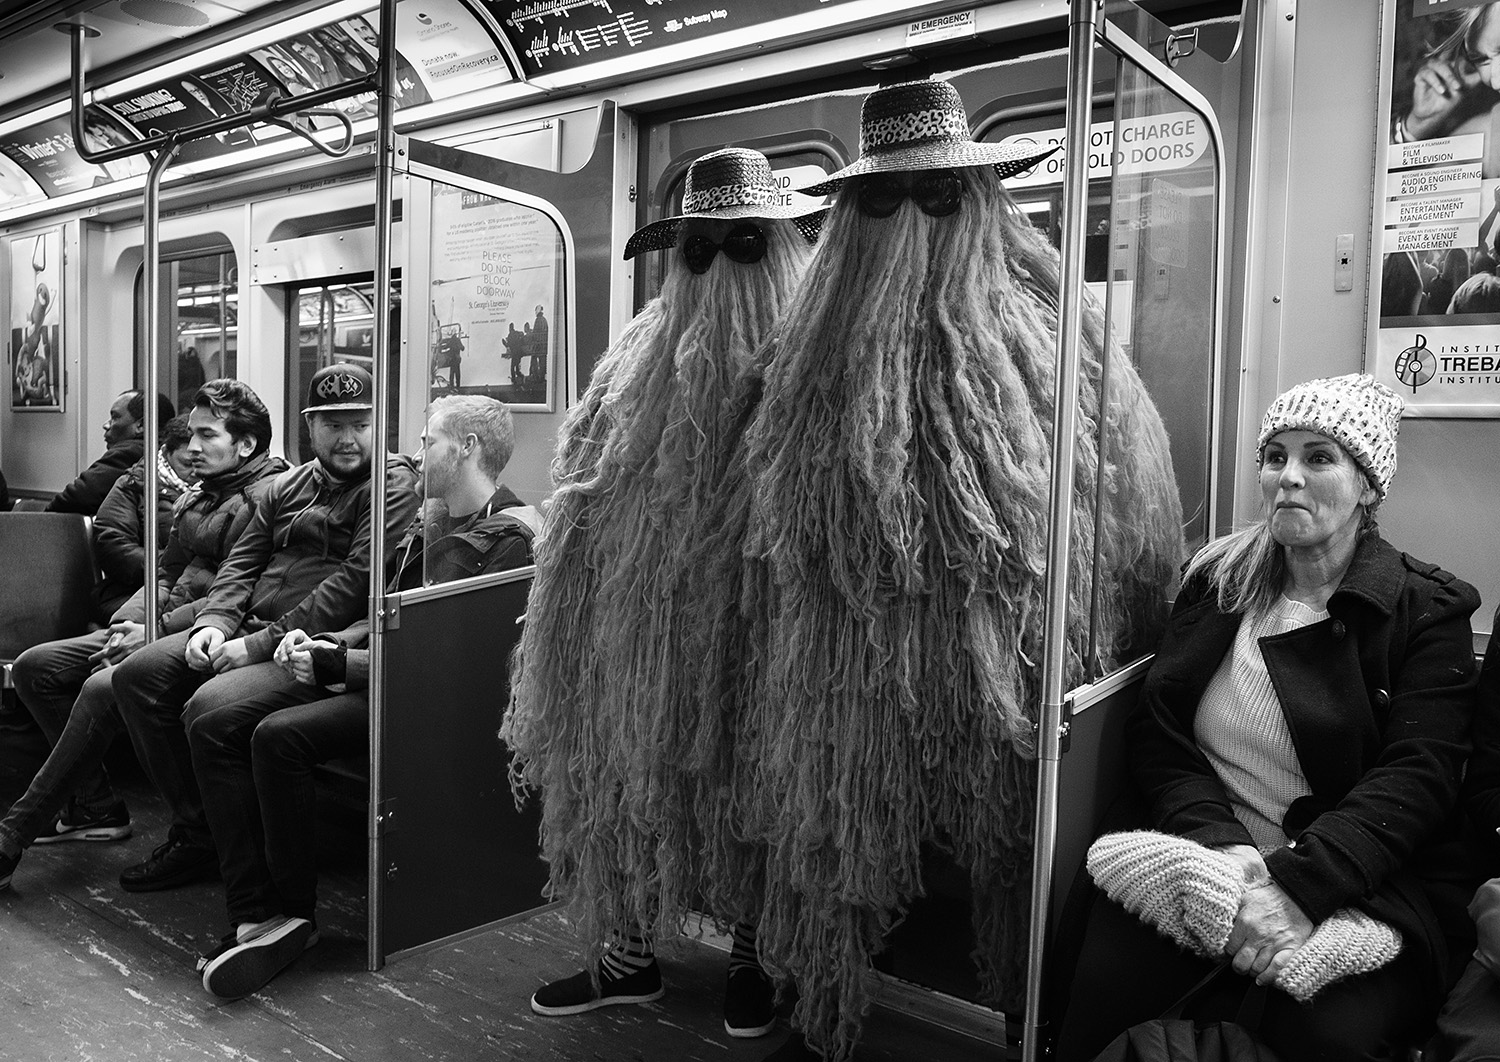 Just another night on the subway